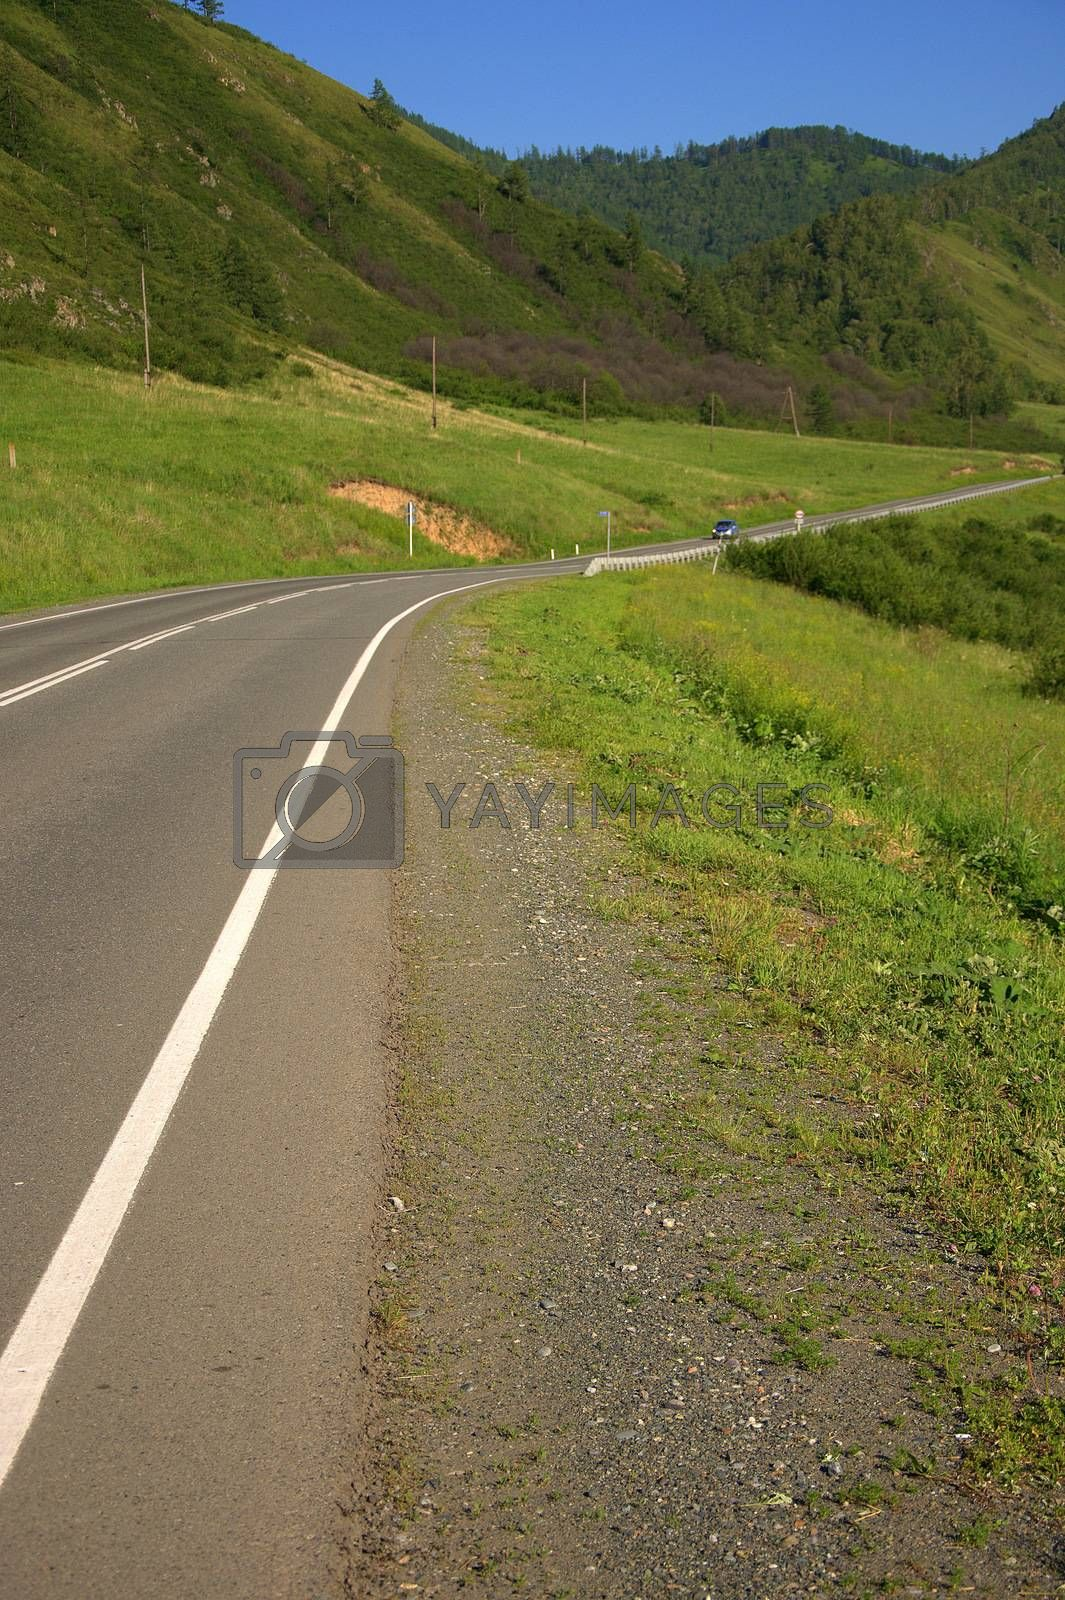 A good asphalt road running through a picturesque valley at the foot of a high hill. Altai, Siberia, Russia.